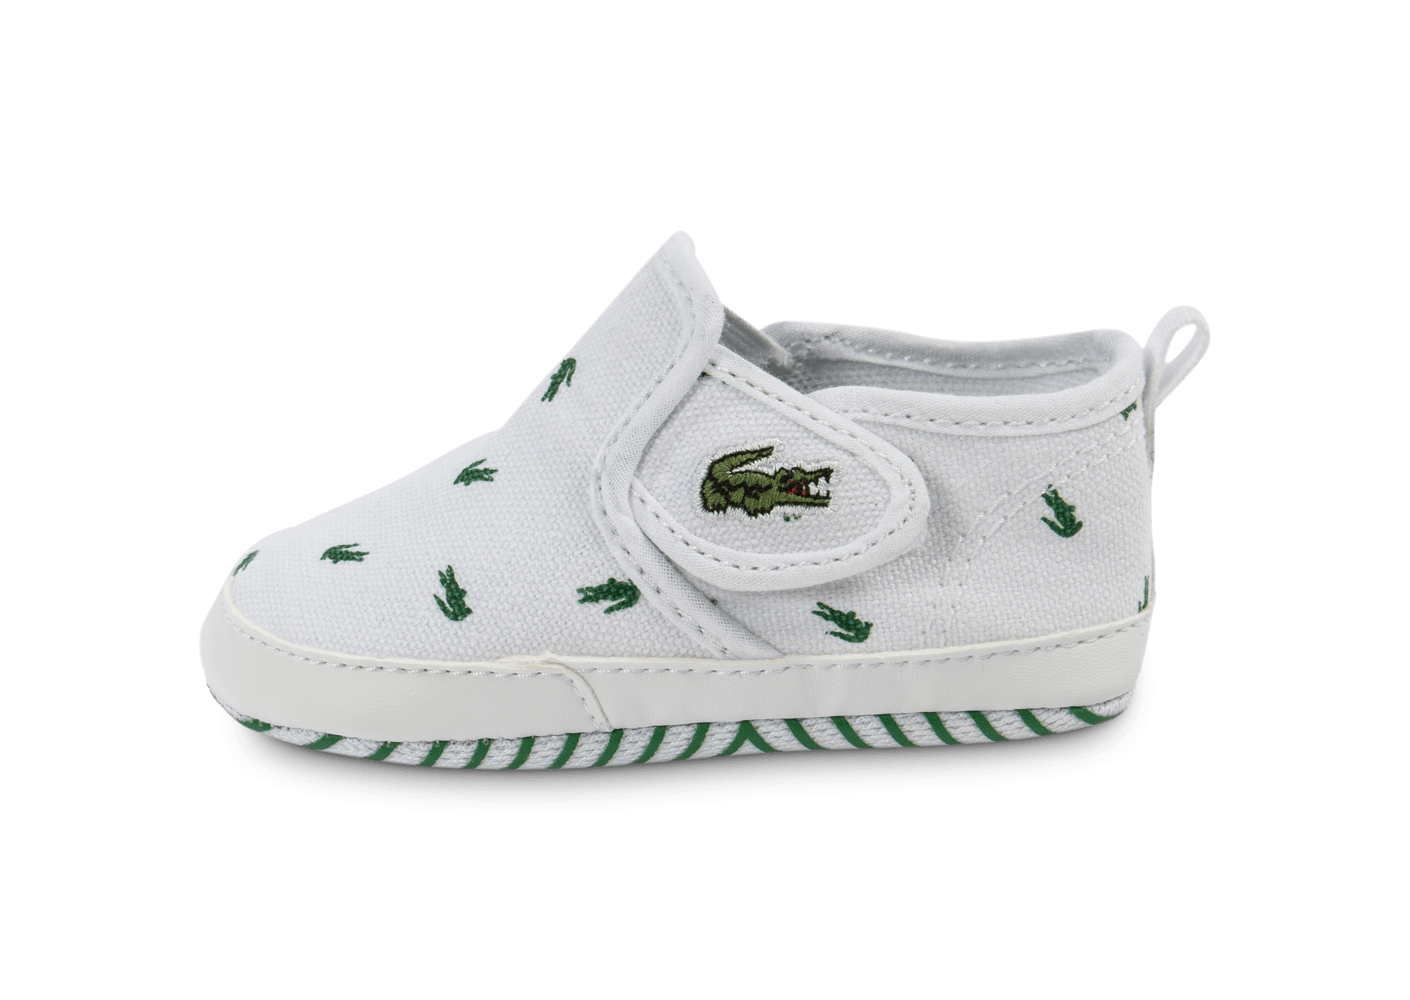 lacoste gazon b b blanche chaussures enfant chausport. Black Bedroom Furniture Sets. Home Design Ideas